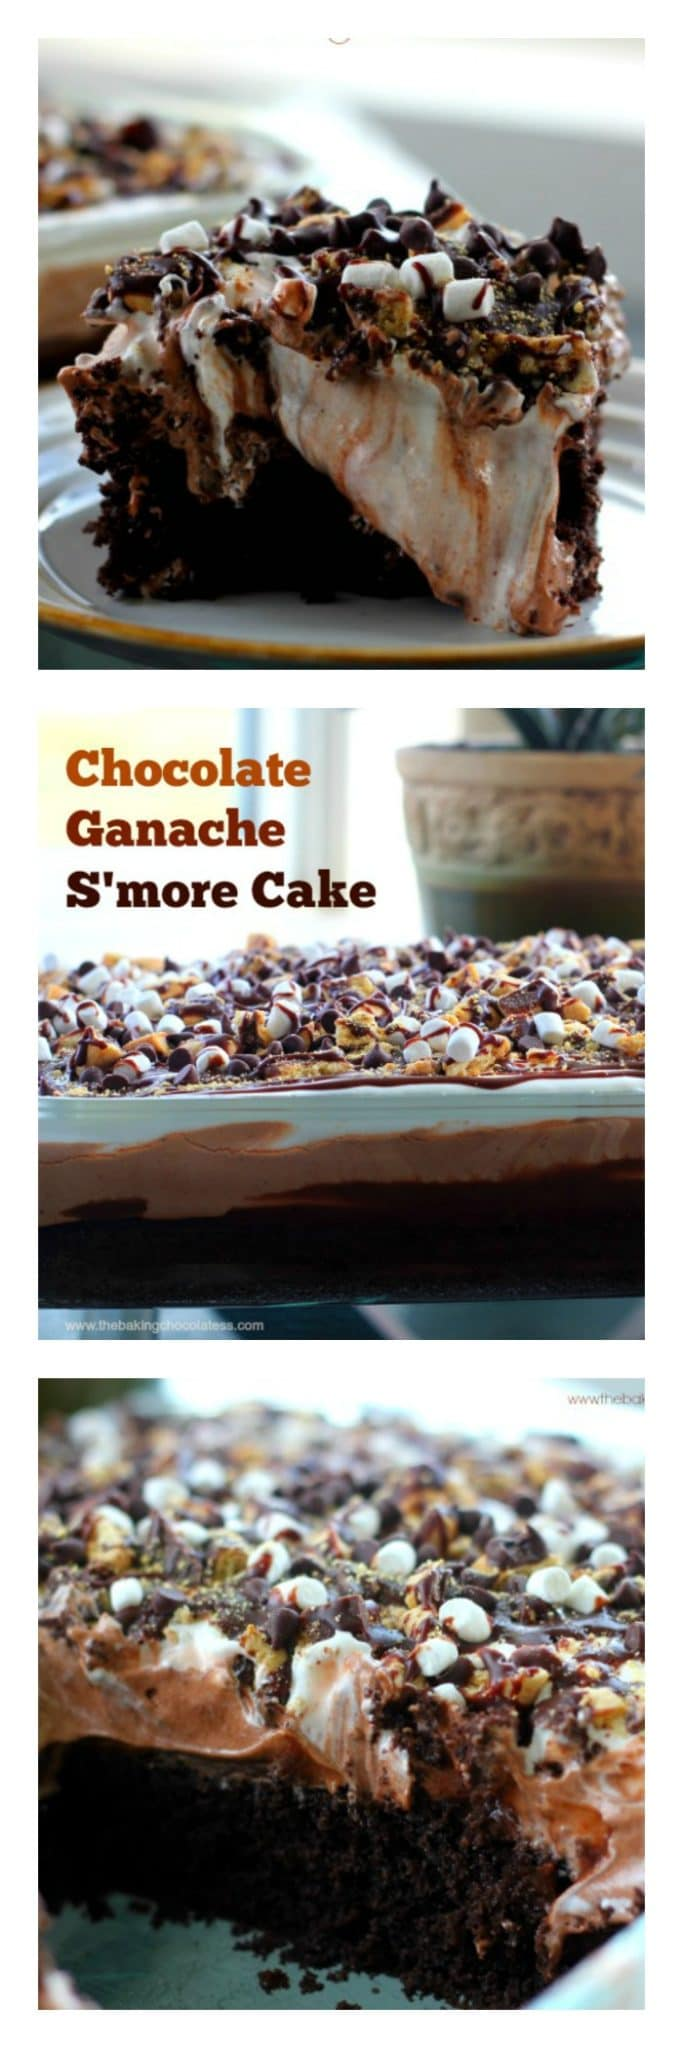 Chocolate Ganache S'More Cake